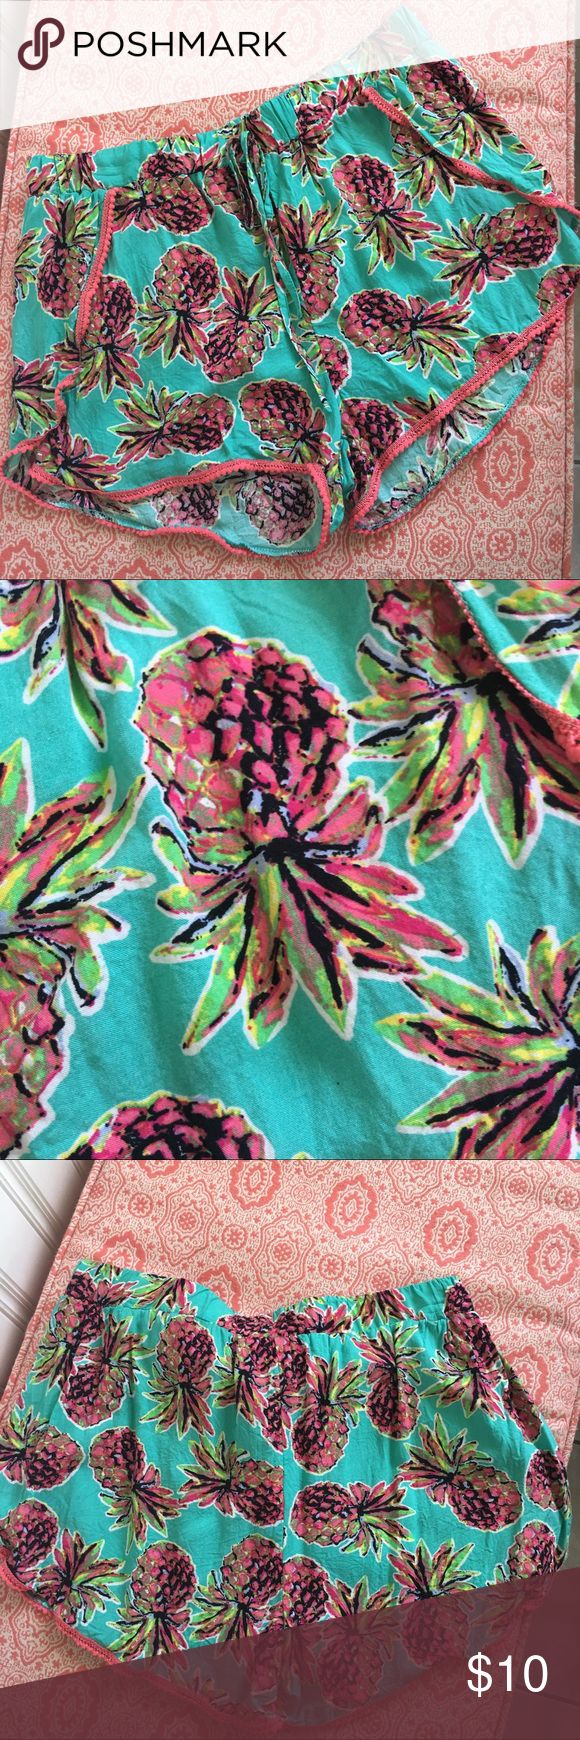 Tropical Pineapple print faux wrap shorts Worn and washed once, these shorts are the perfect throw on and go summer staple! Size Large (juniors) Shorts